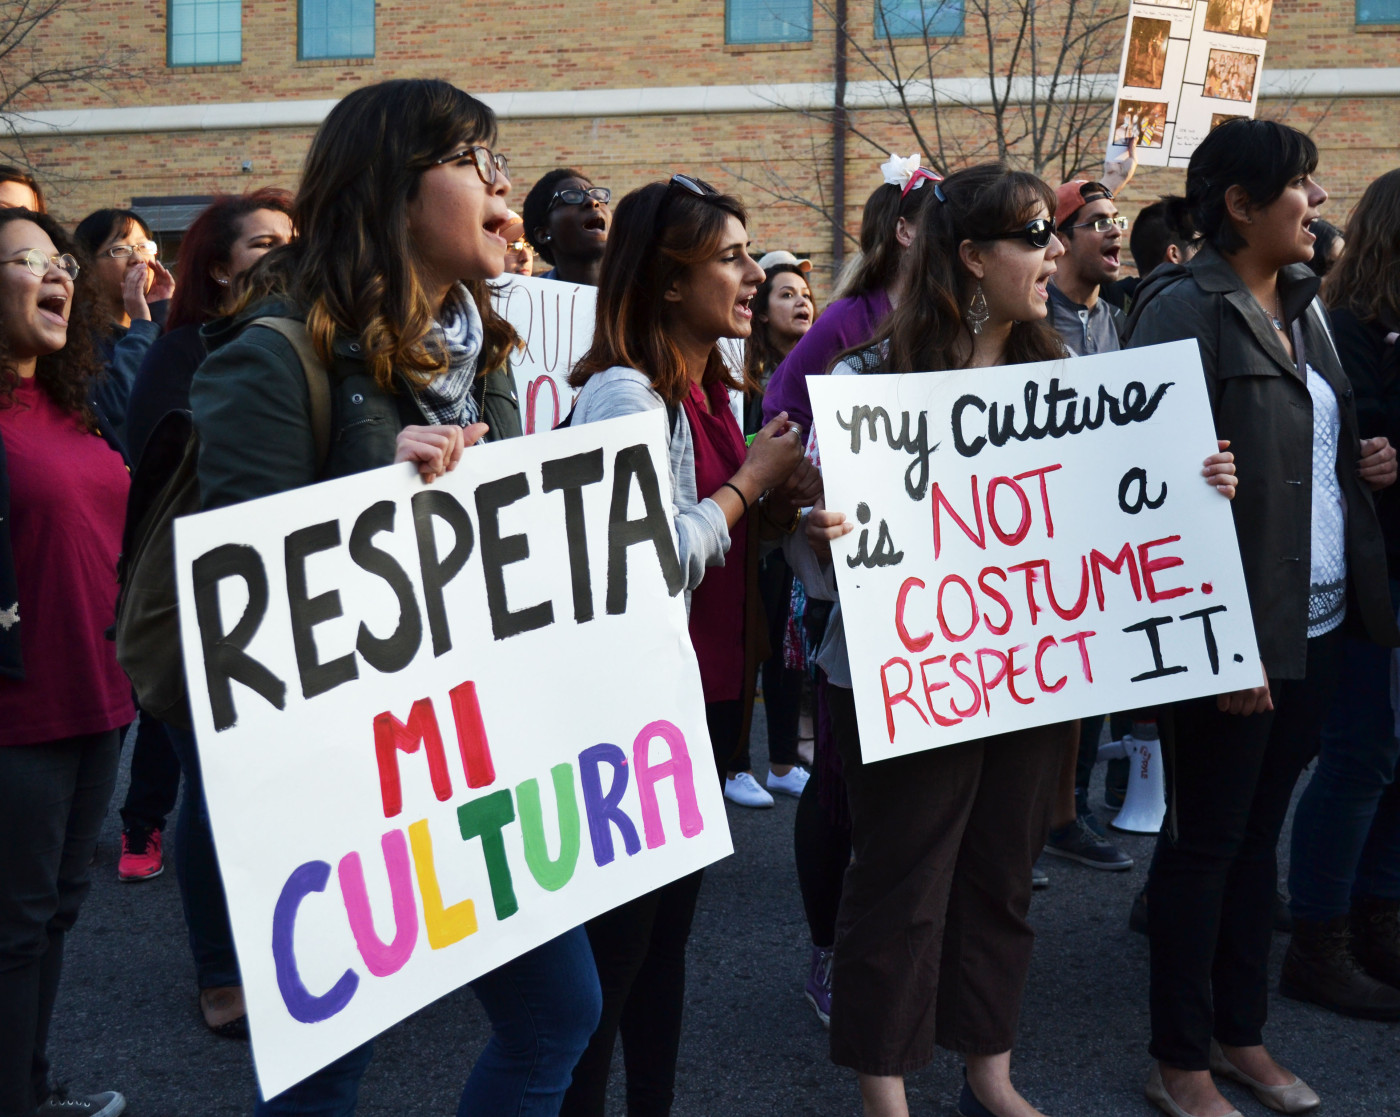 Andi Clark, junior Latin American studies, participates in the United Against Racism March on February 12, 2015 in Austin, Texas. Andi said she wants the University to be a safe place where her, and many other student's, culture can be respected.